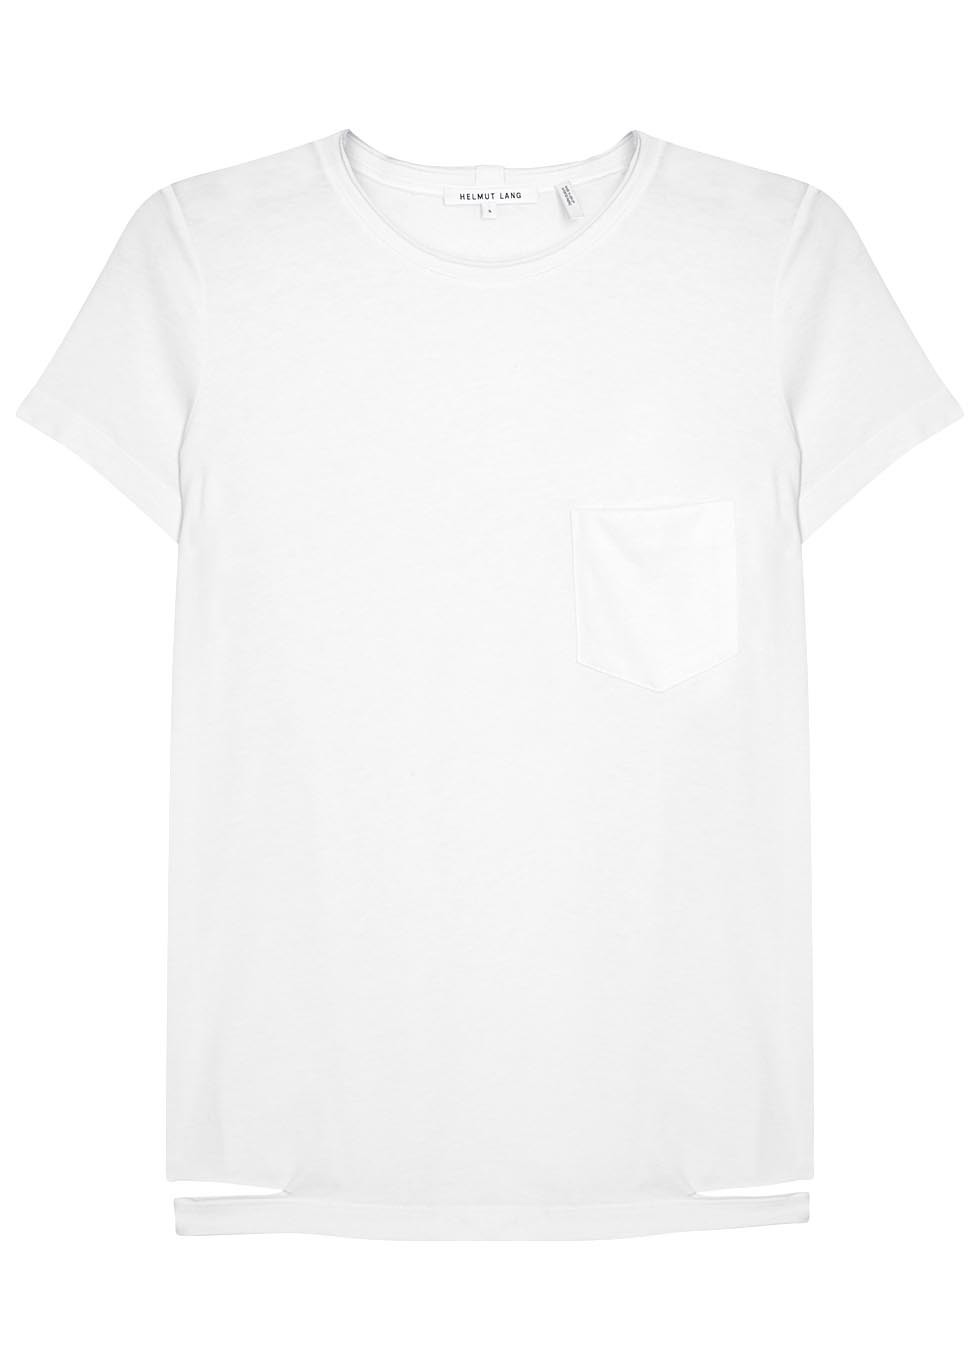 White Cut Out Cotton T Shirt - pattern: plain; style: t-shirt; predominant colour: white; occasions: casual; length: standard; fibres: cotton - 100%; fit: body skimming; neckline: crew; sleeve length: short sleeve; sleeve style: standard; pattern type: fabric; texture group: jersey - stretchy/drapey; season: s/s 2016; wardrobe: basic